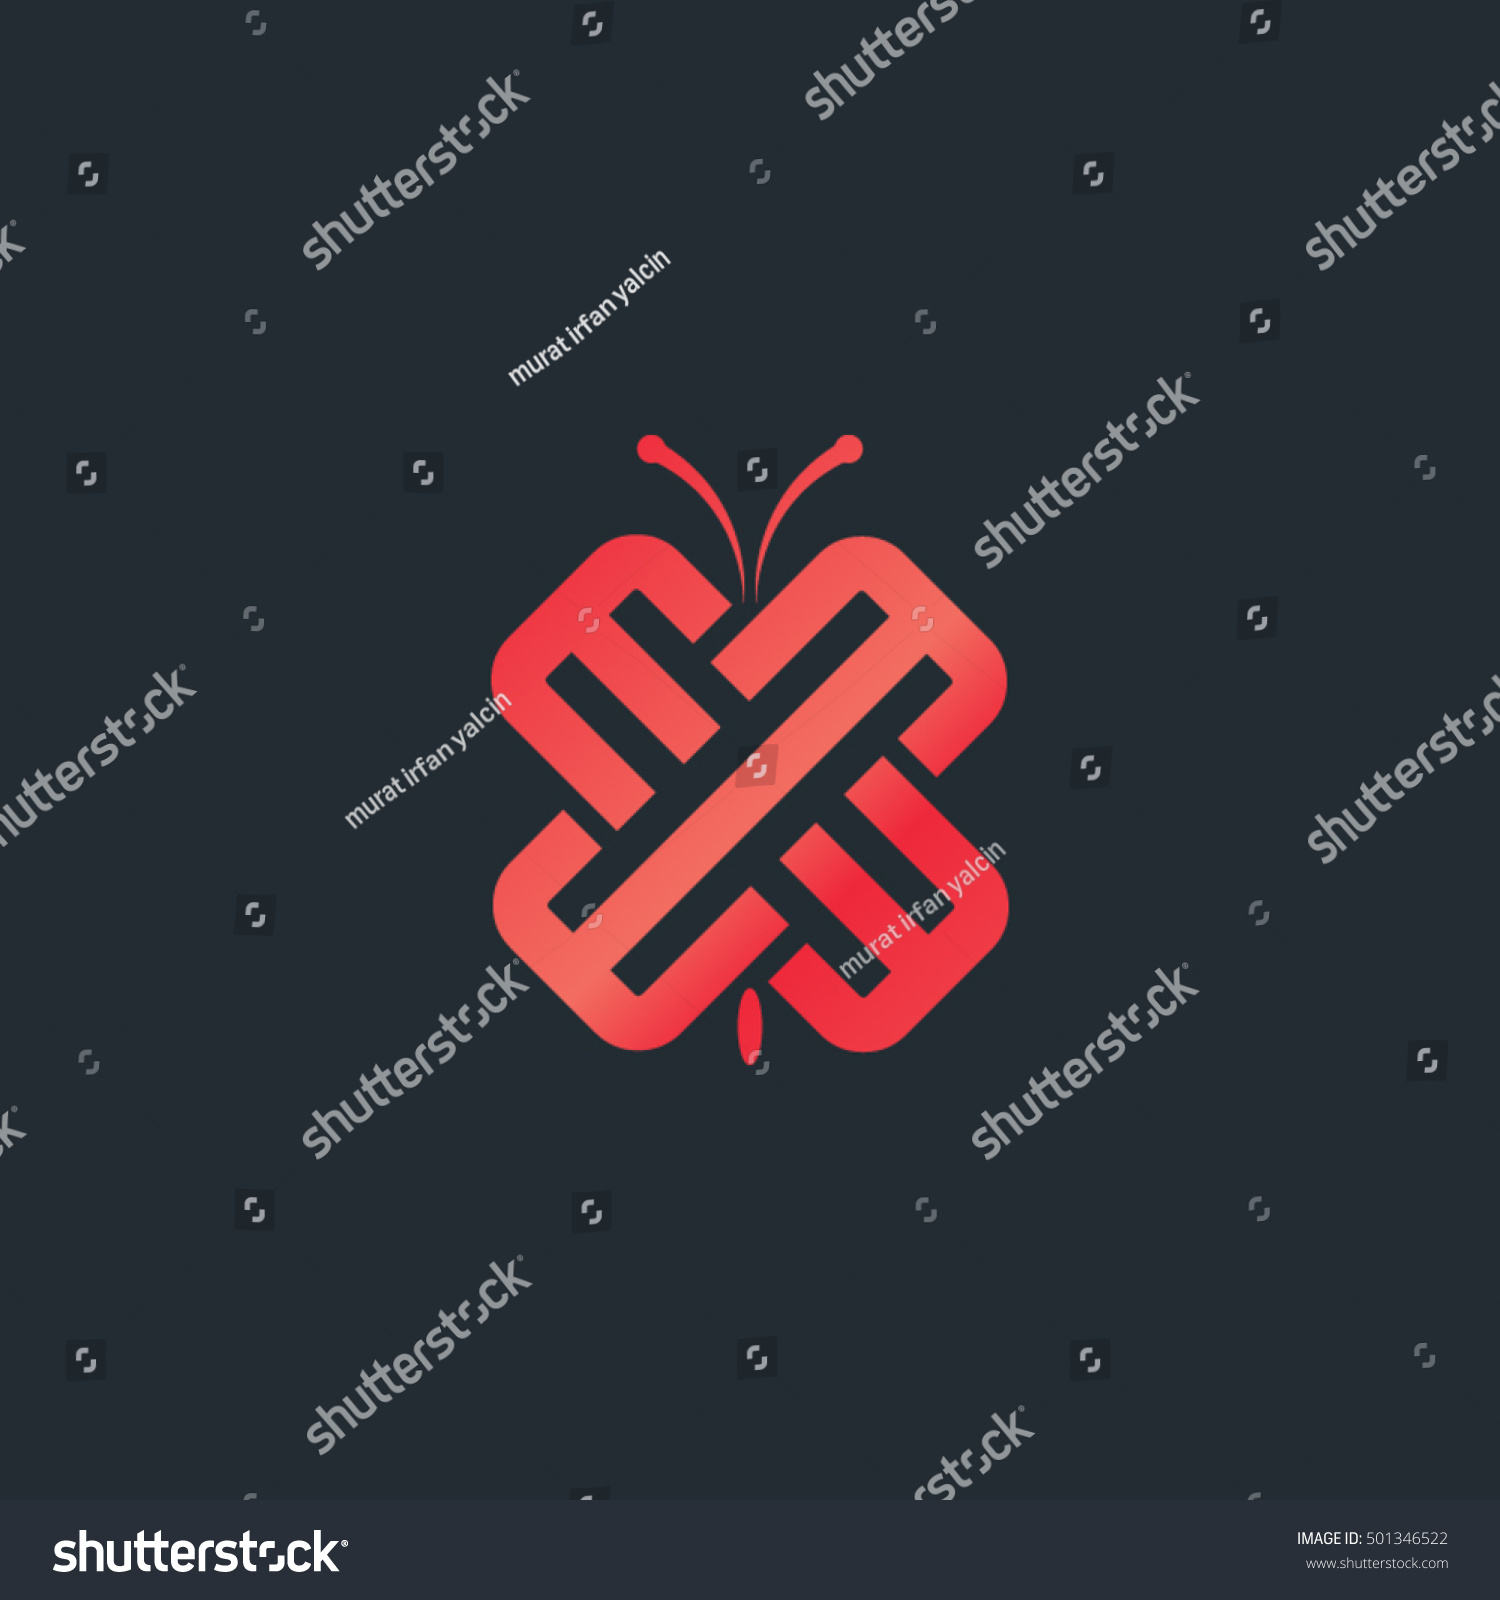 Consisting letters e butterfly looking symbol stock vector consisting of the letters e butterfly looking symbol design vector biocorpaavc Choice Image